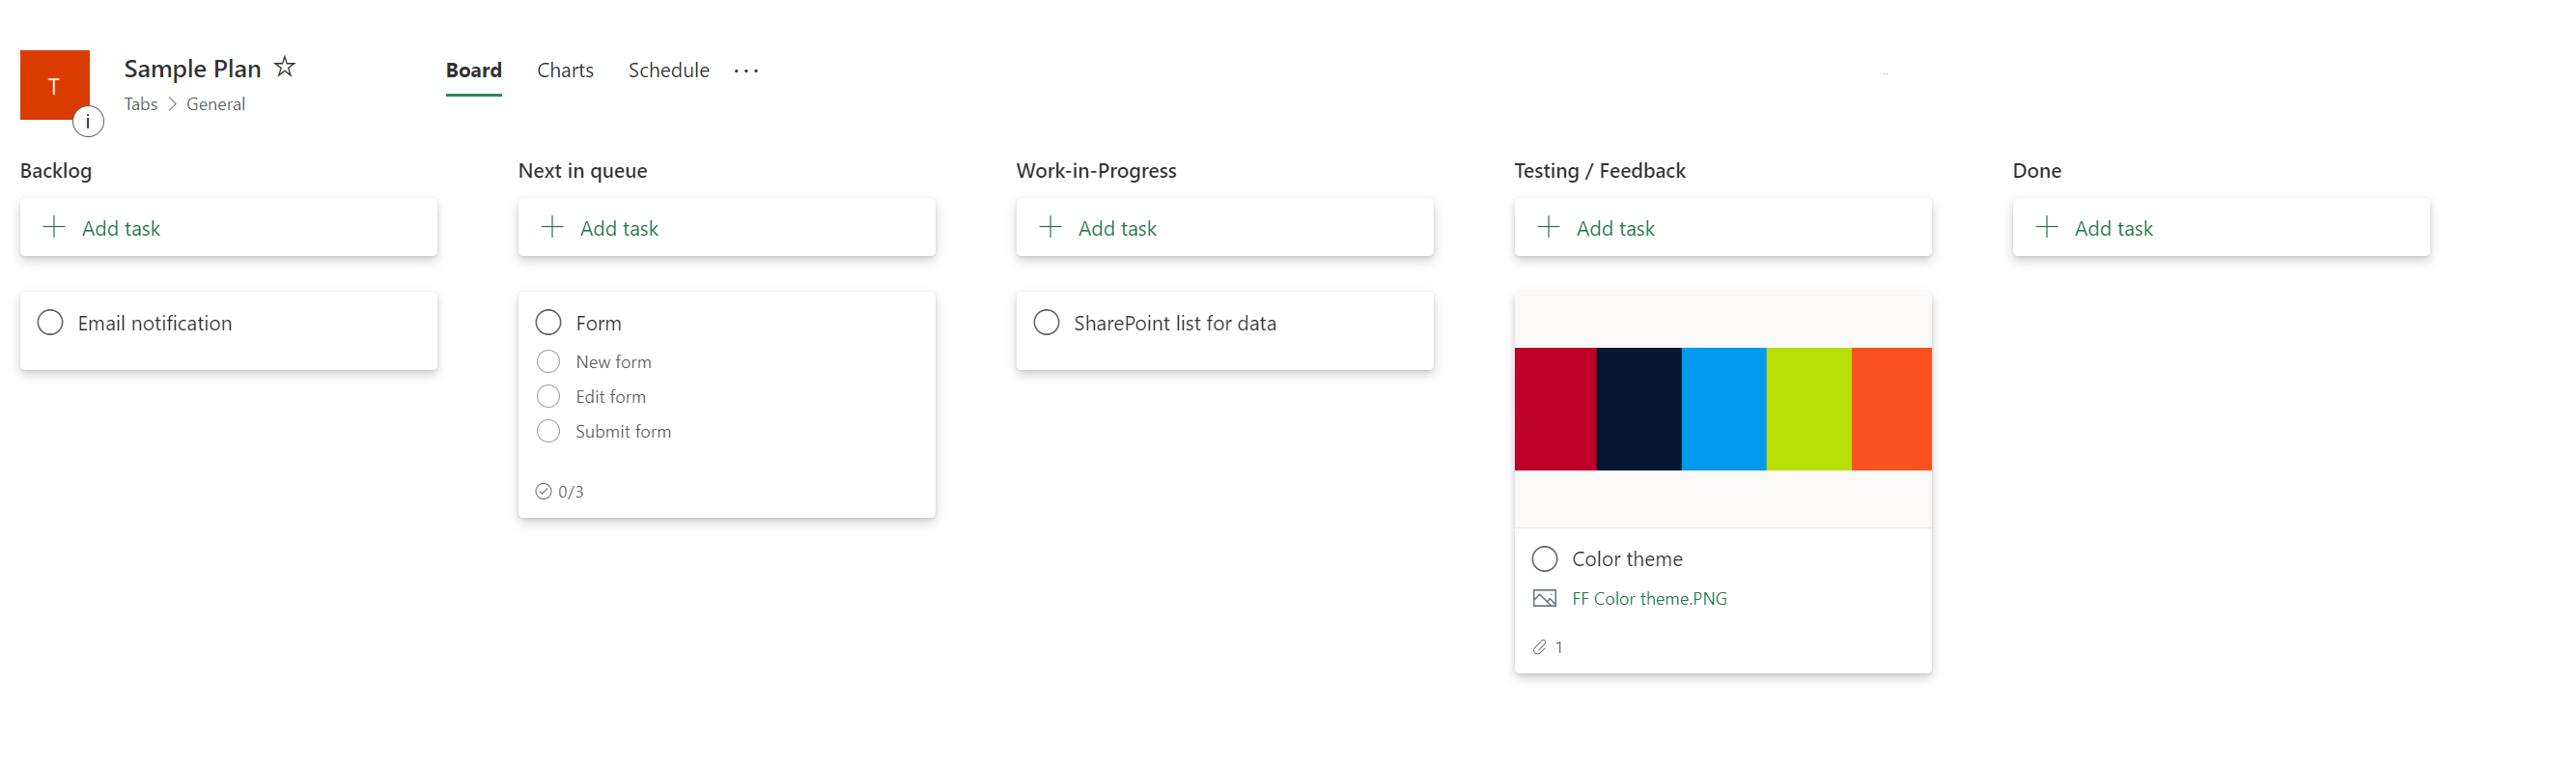 Sample of Planner buckets, containing backlog, next in queue, work in progress, feedback and done.